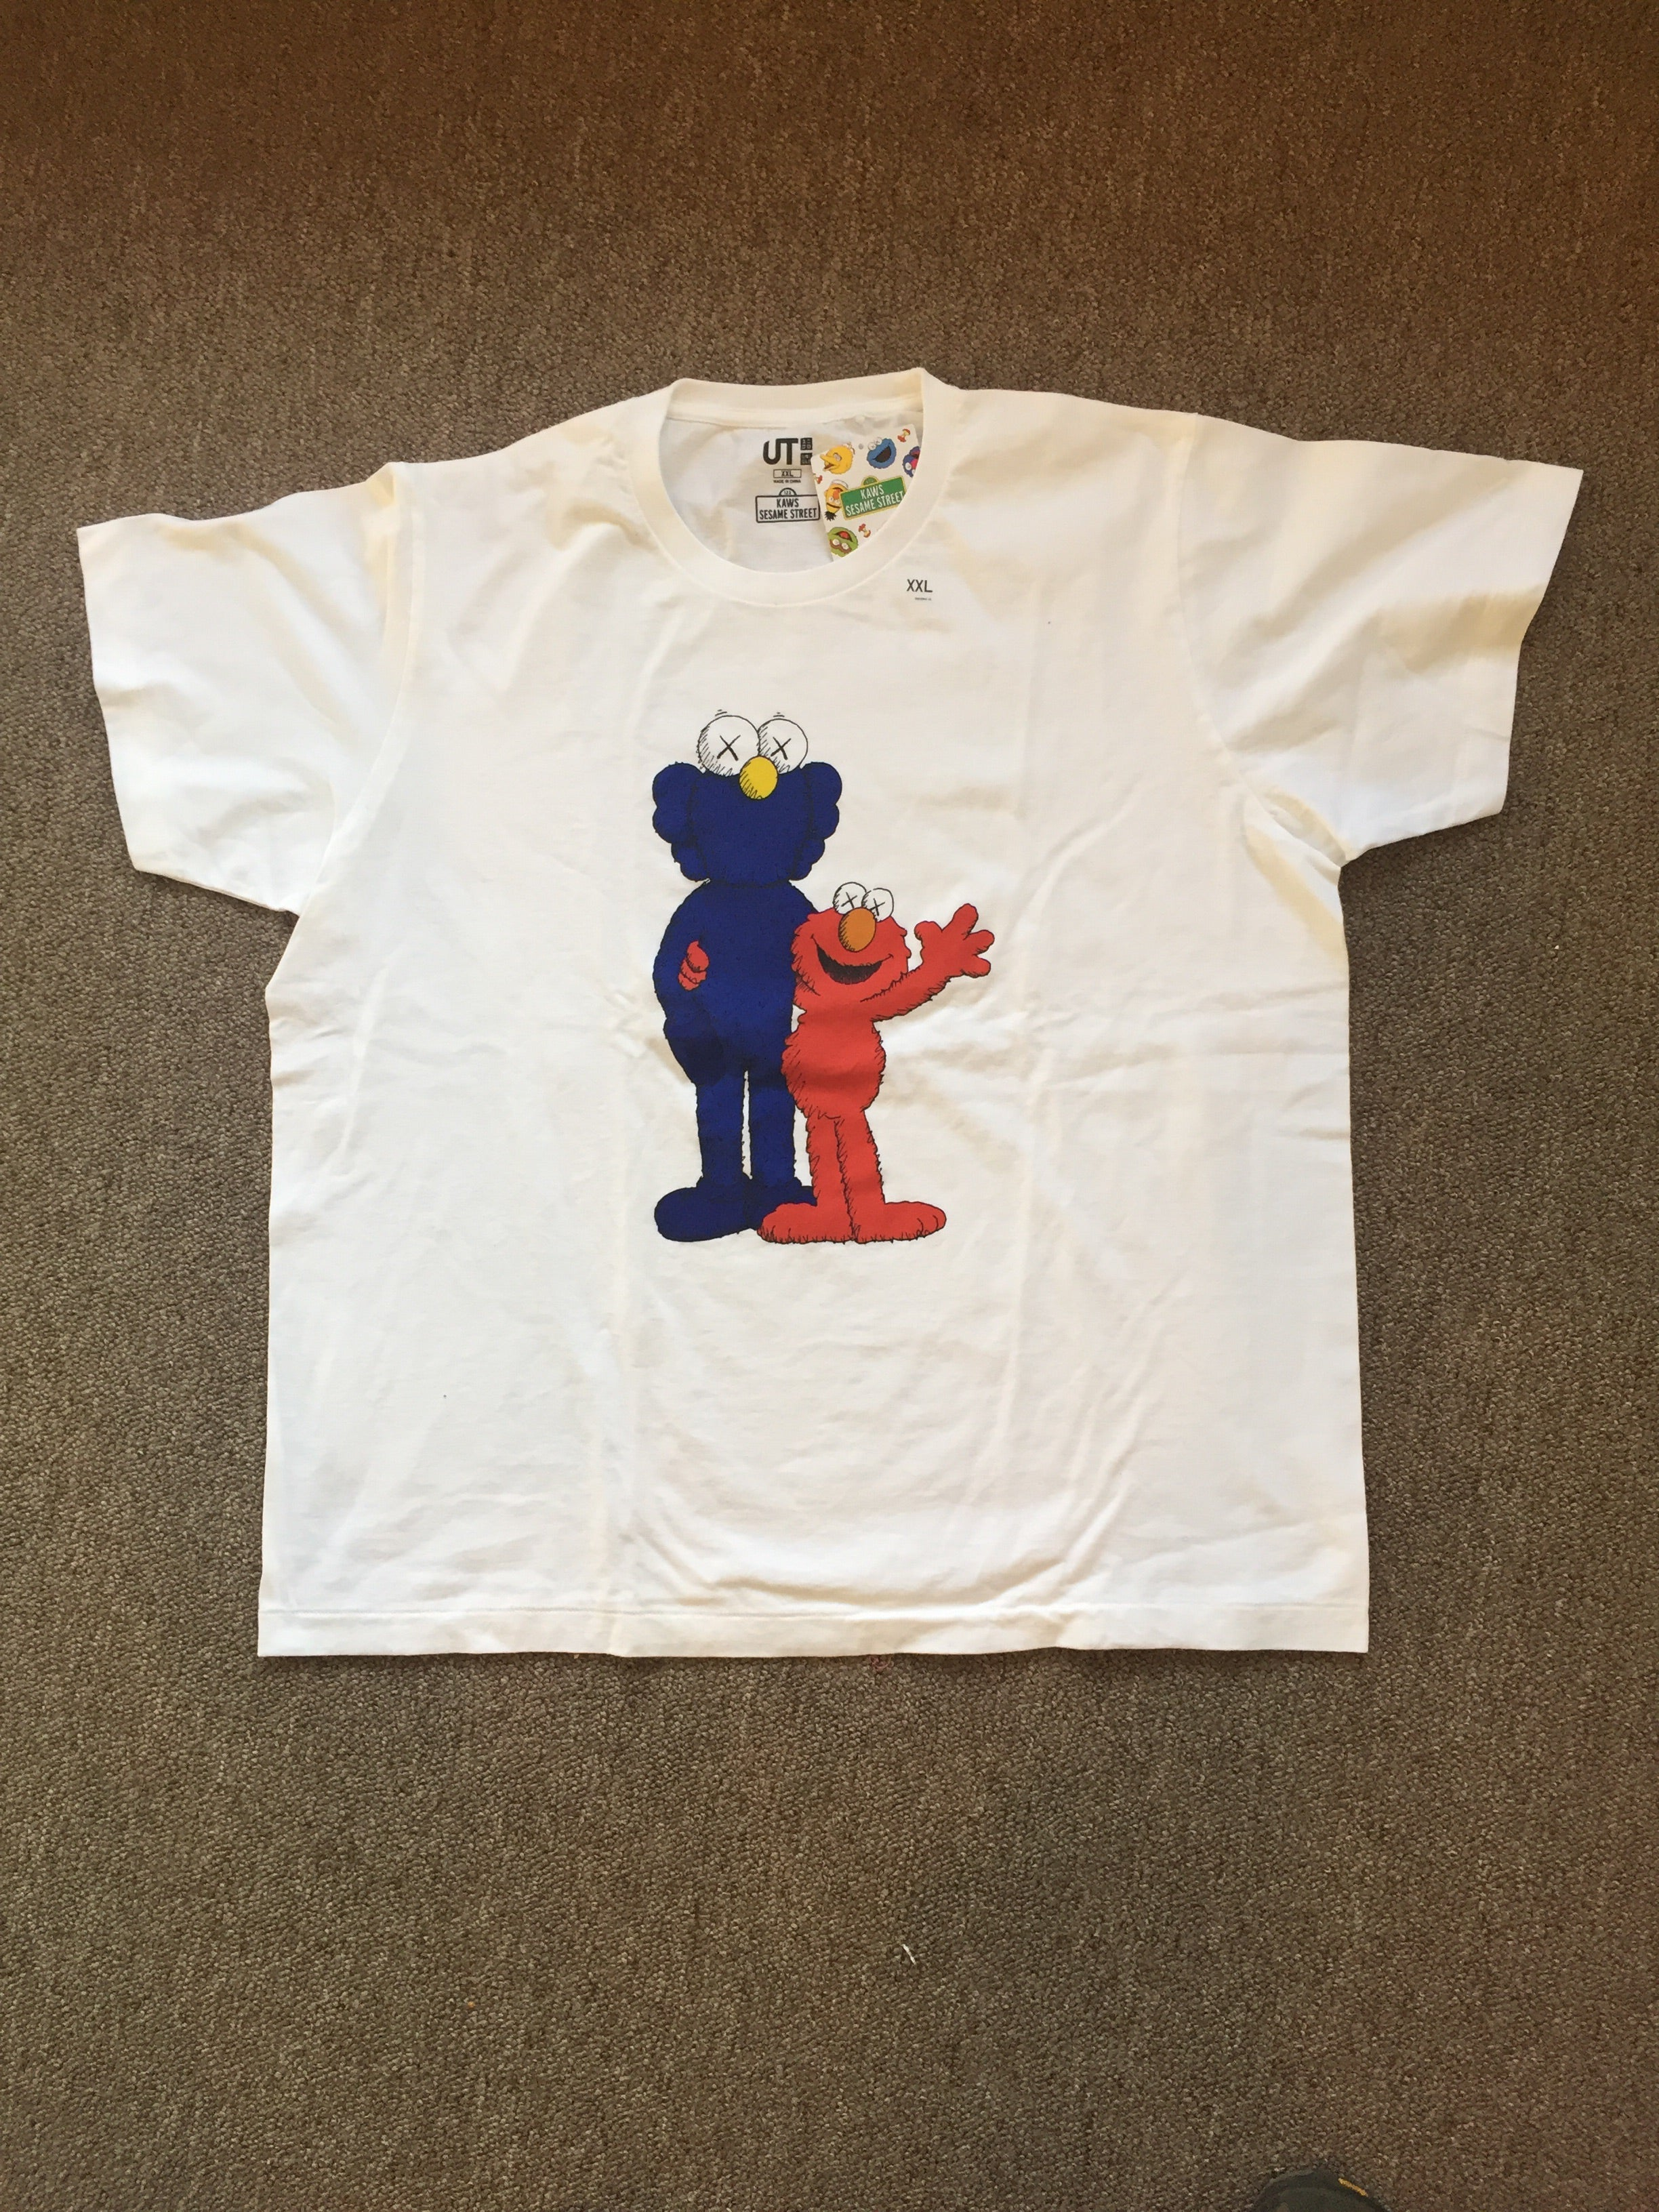 Kaws - White - Elmo and Ghost of Kaws - Size XXL